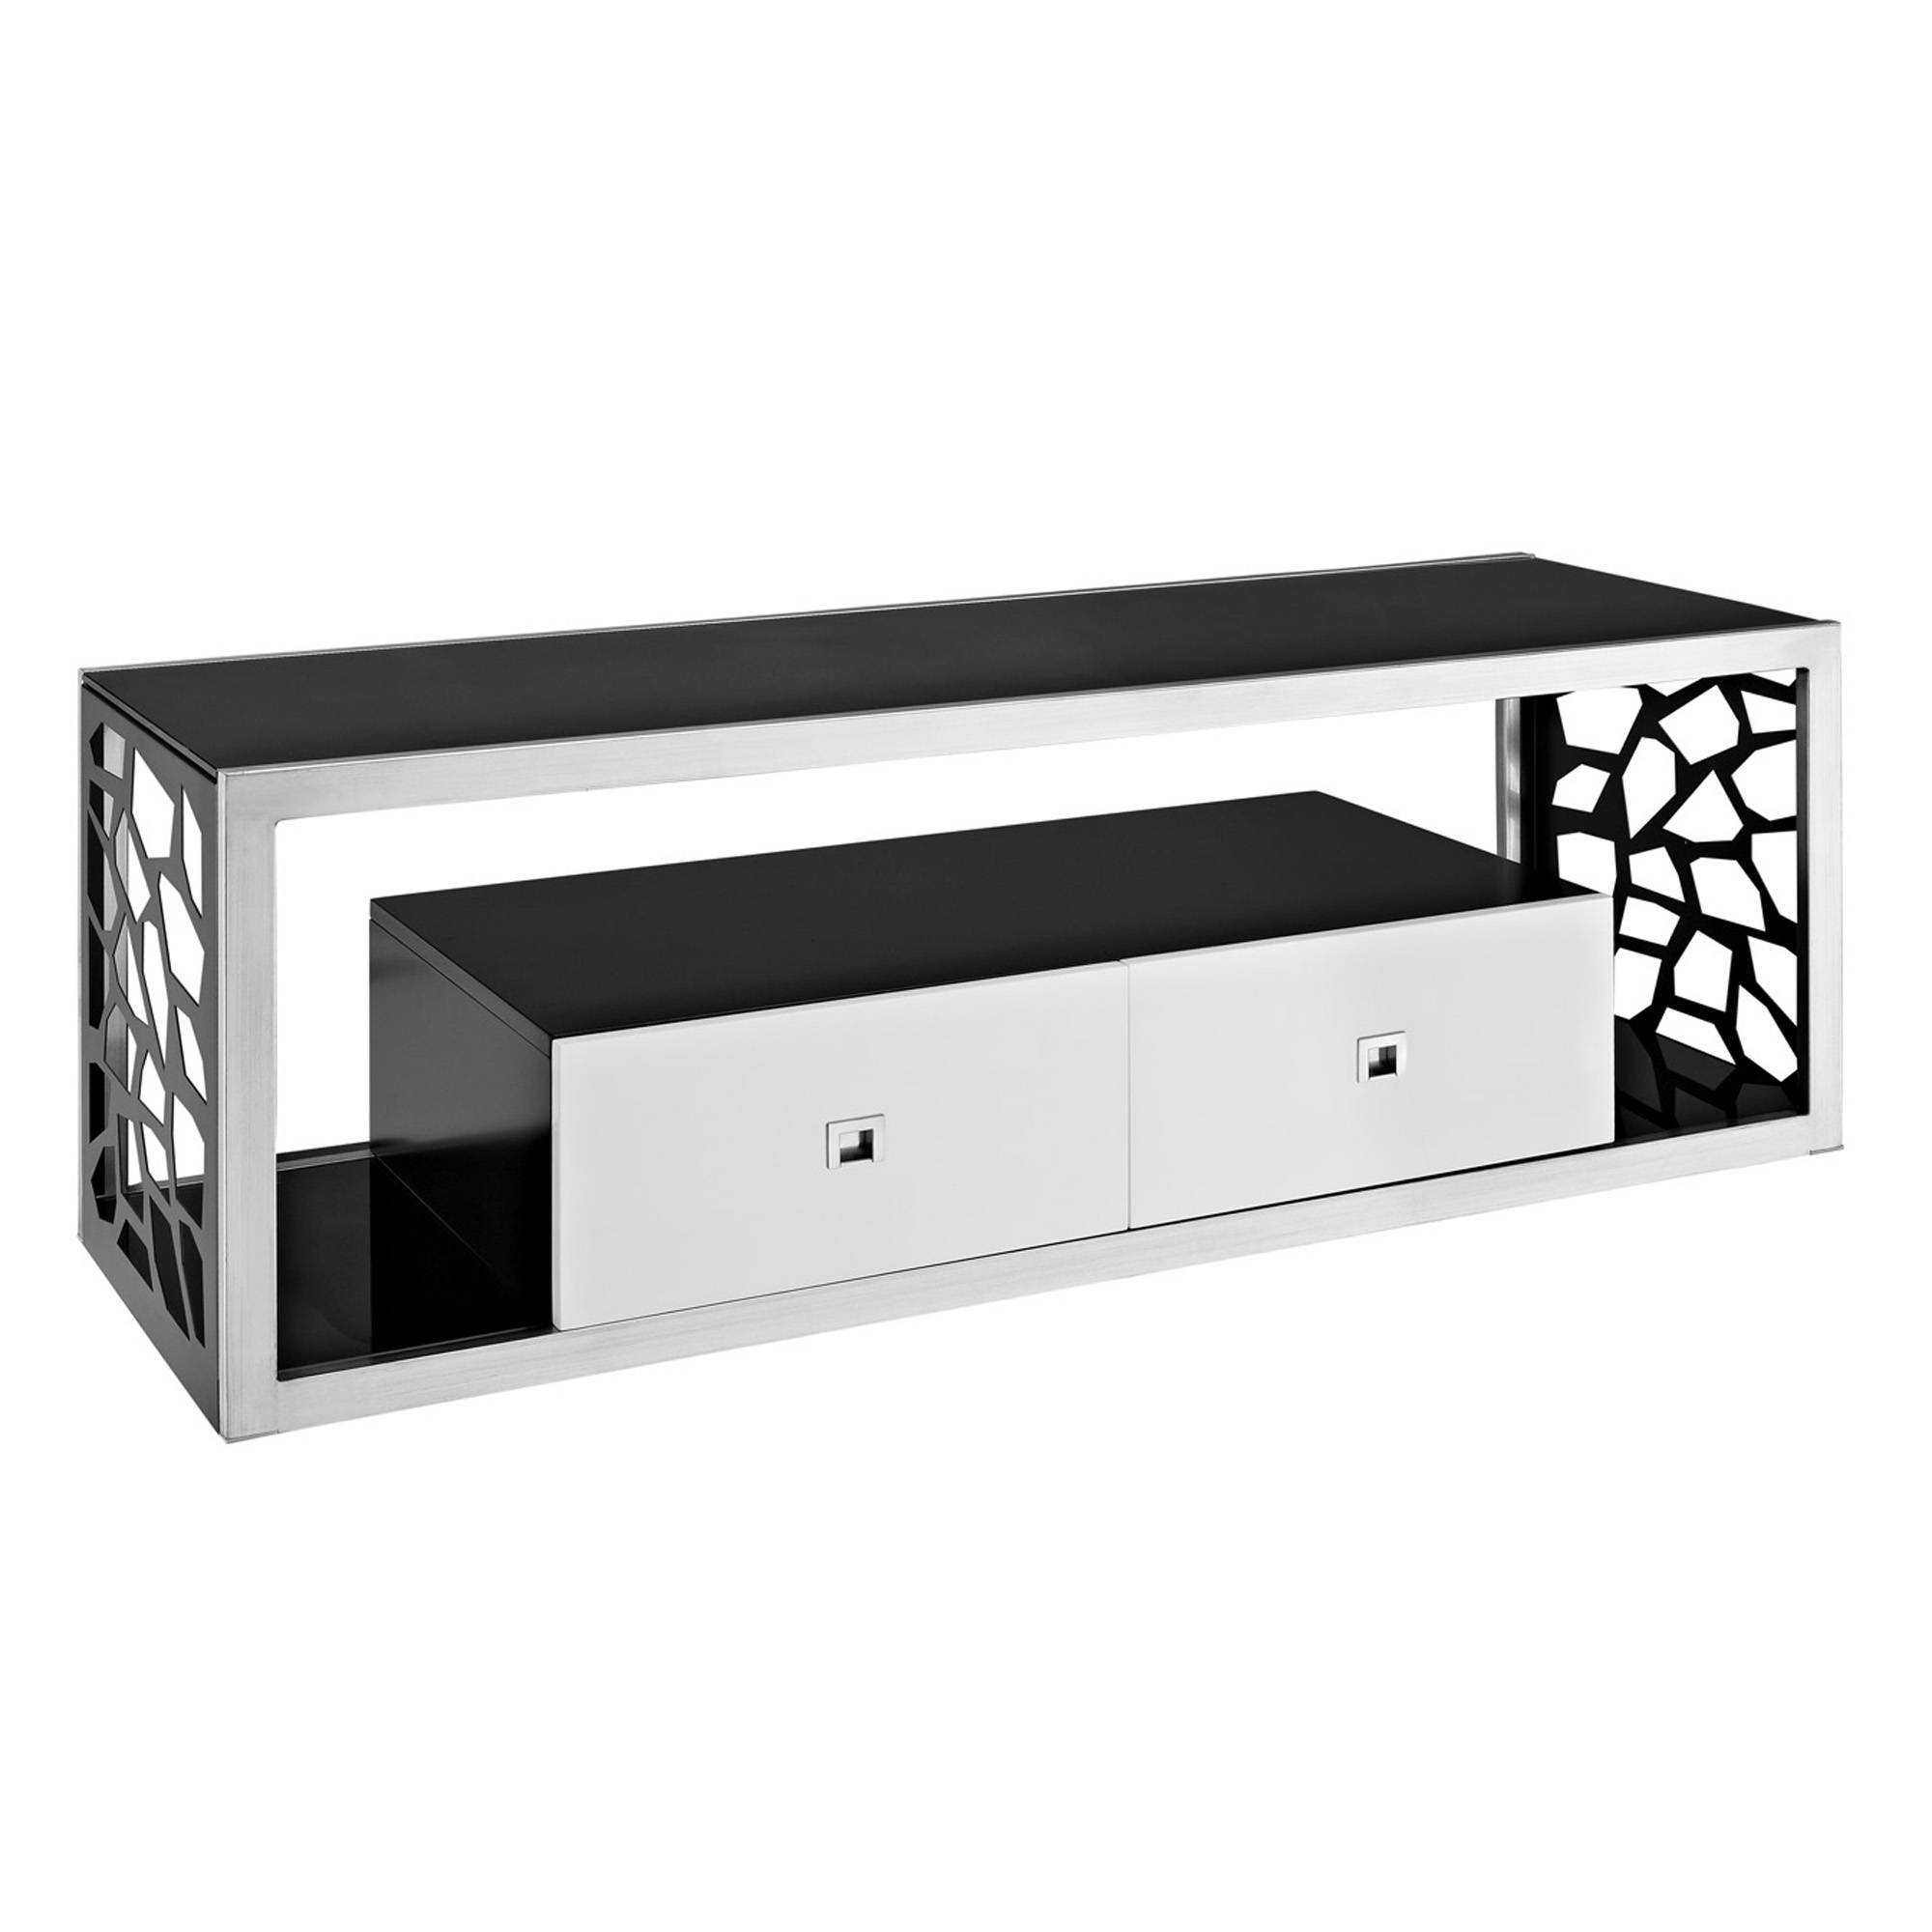 Modern Television Stand 60″ T.v. Stands Entertainment Center with regard to Silver Tv Stands (Image 7 of 15)